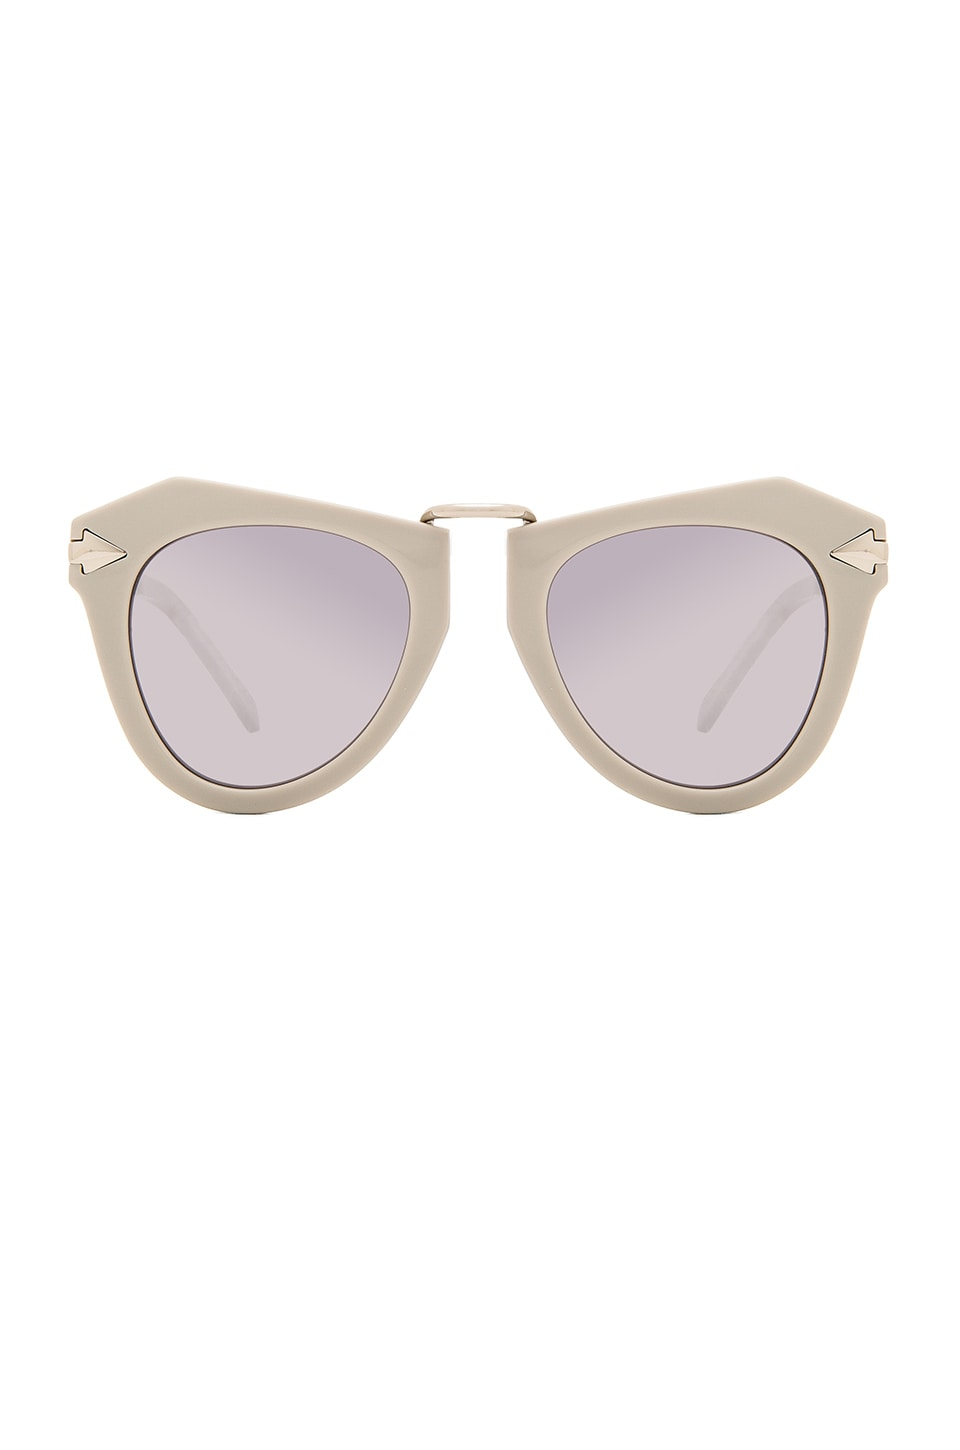 Karen Walker One Orbit in Soft Grey & Shiny Silver